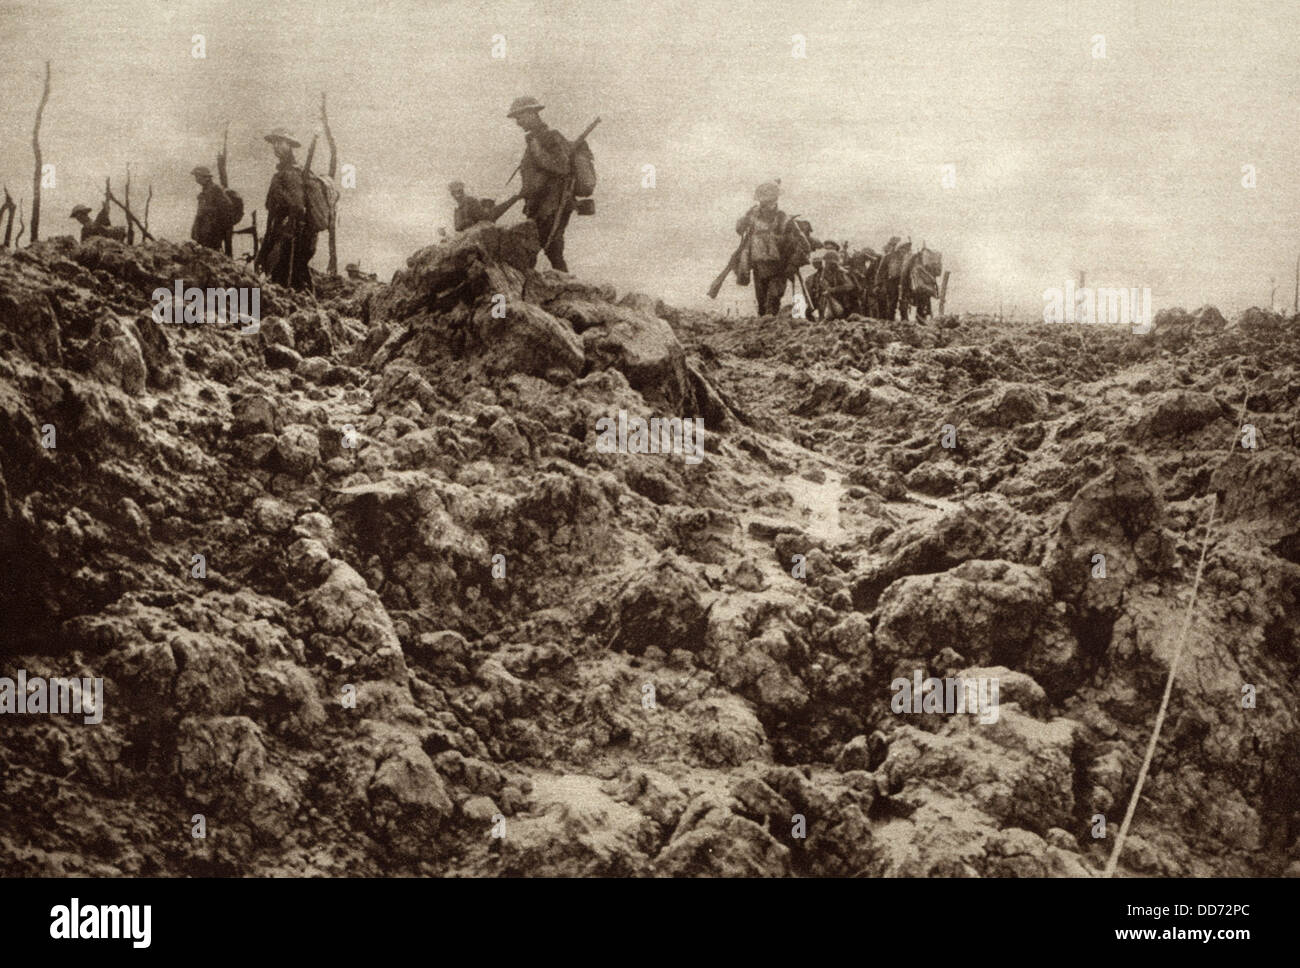 World War 1. Western front battleground has been churned up by shell explosions so that it bears no resemblance - Stock Image